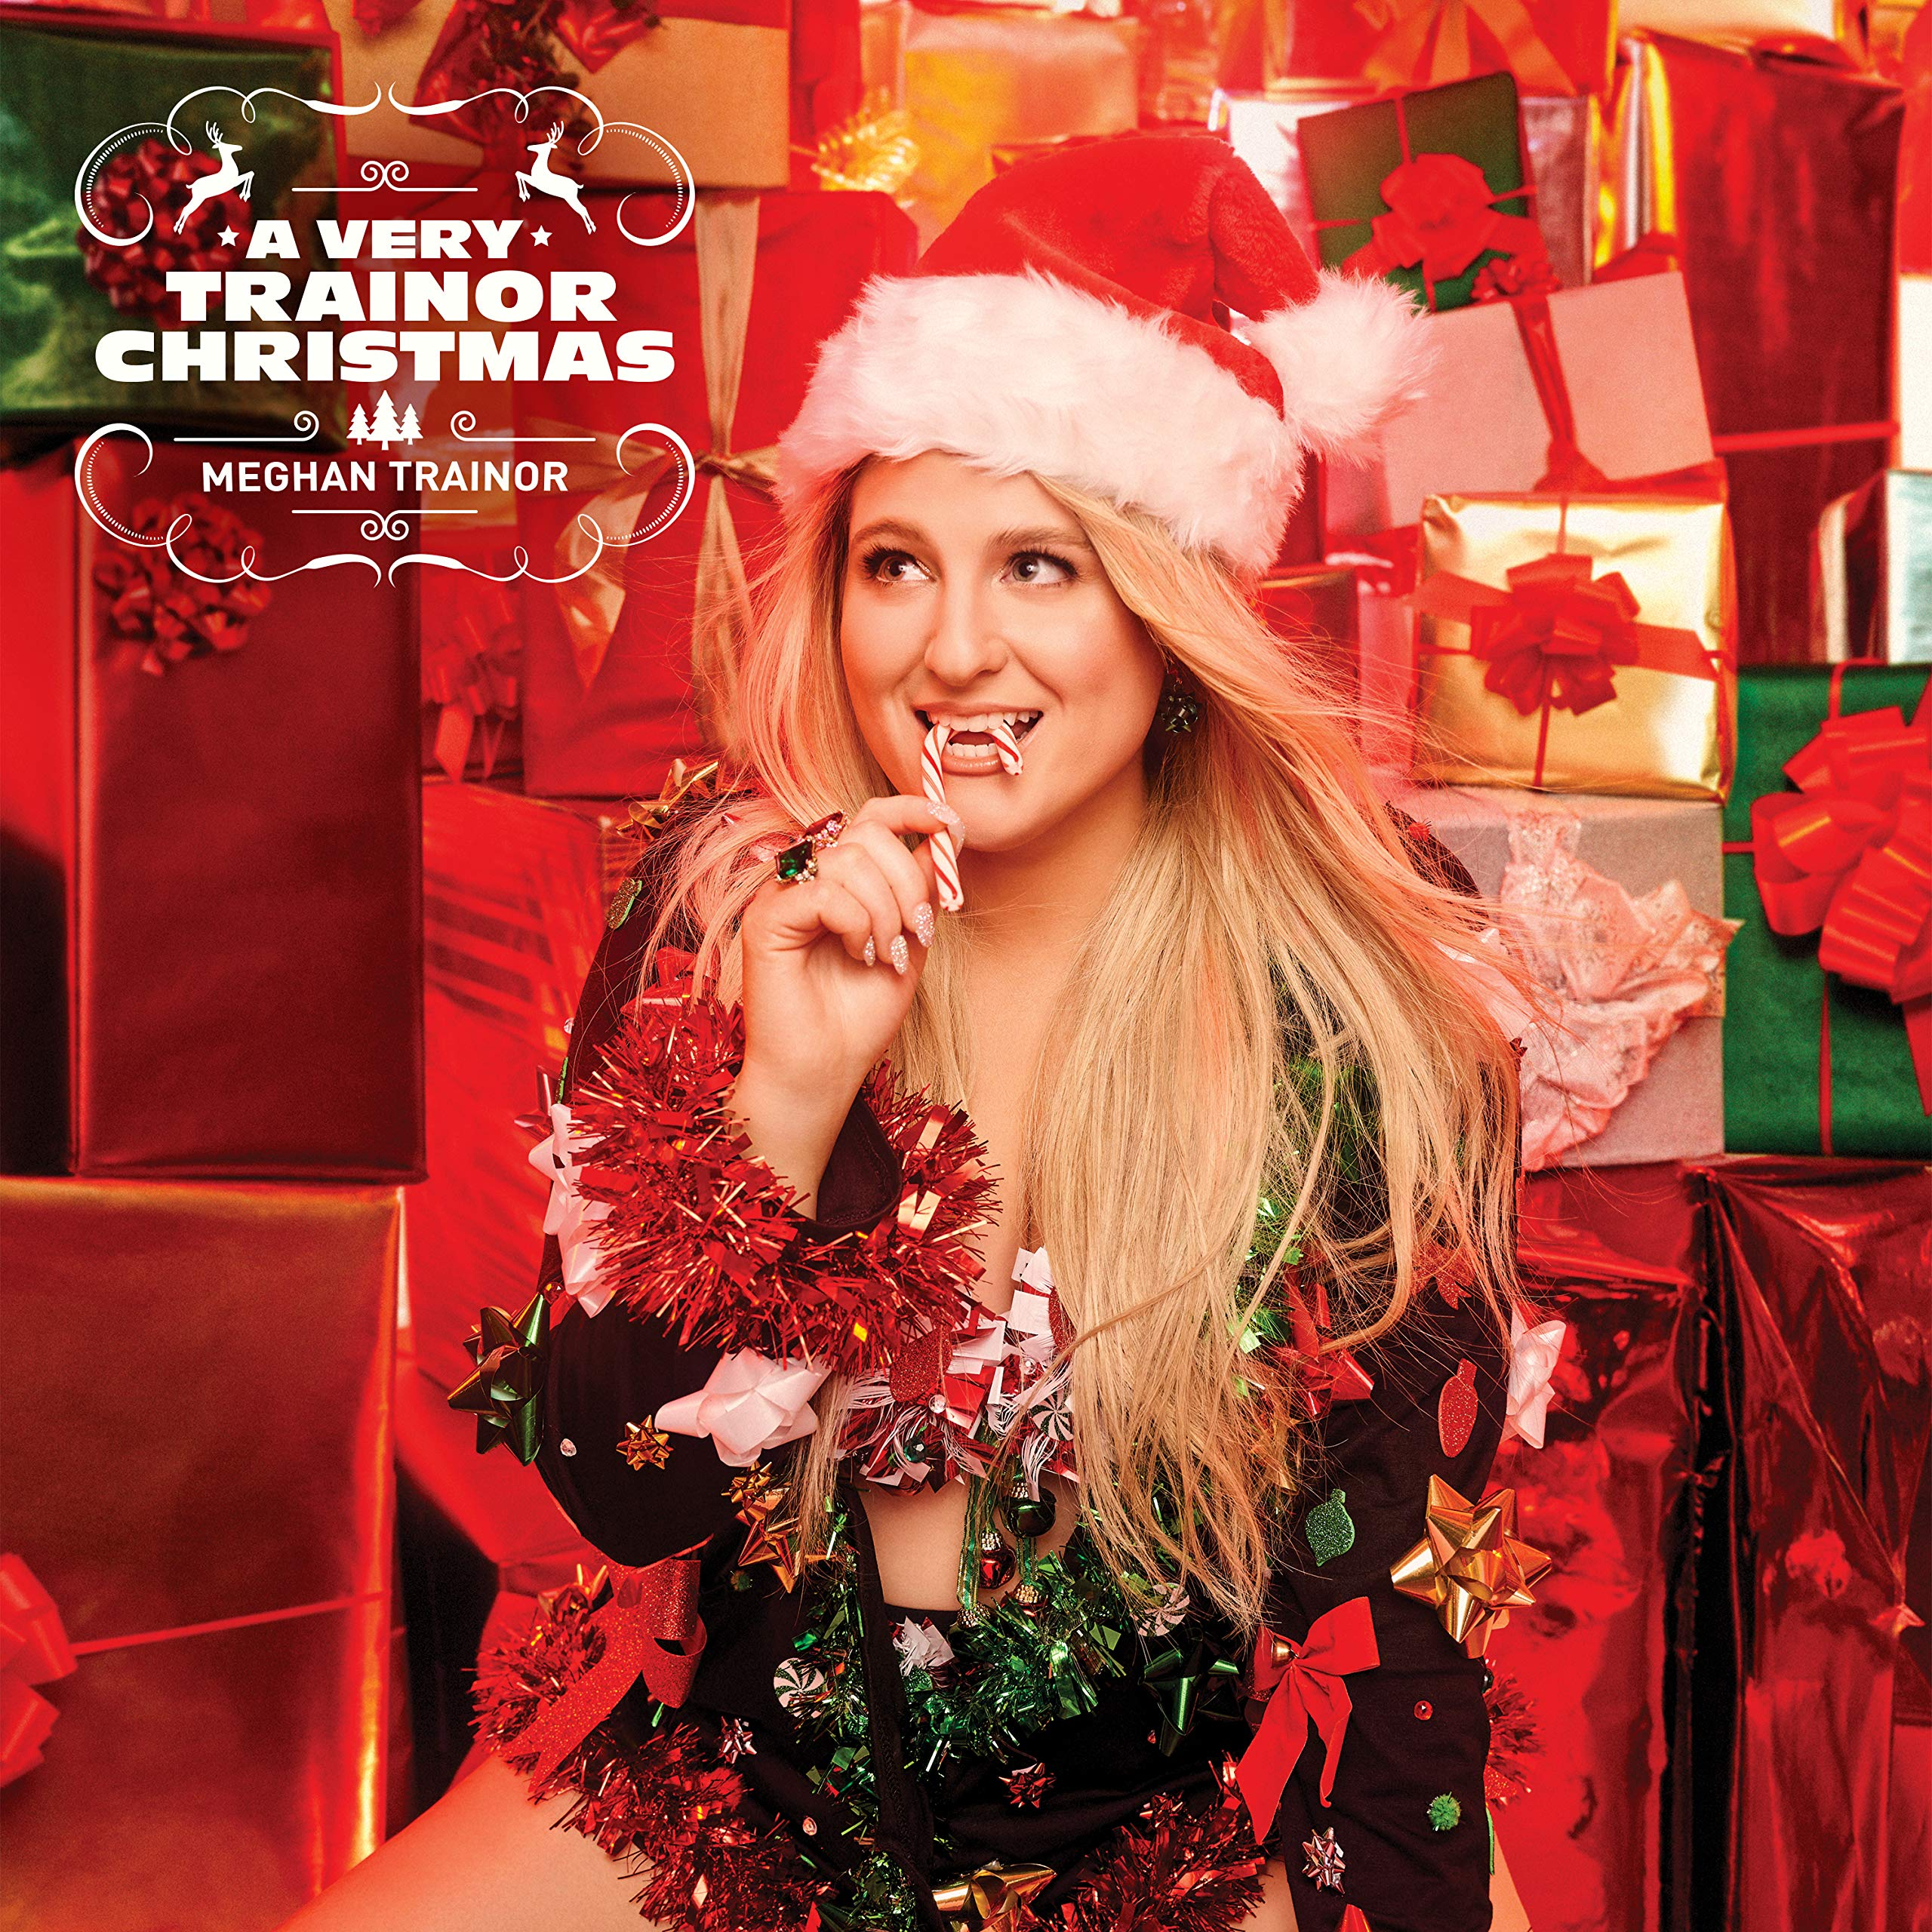 Meghan Trainor - A Very Trainor Christmas (2020) [FLAC] Download